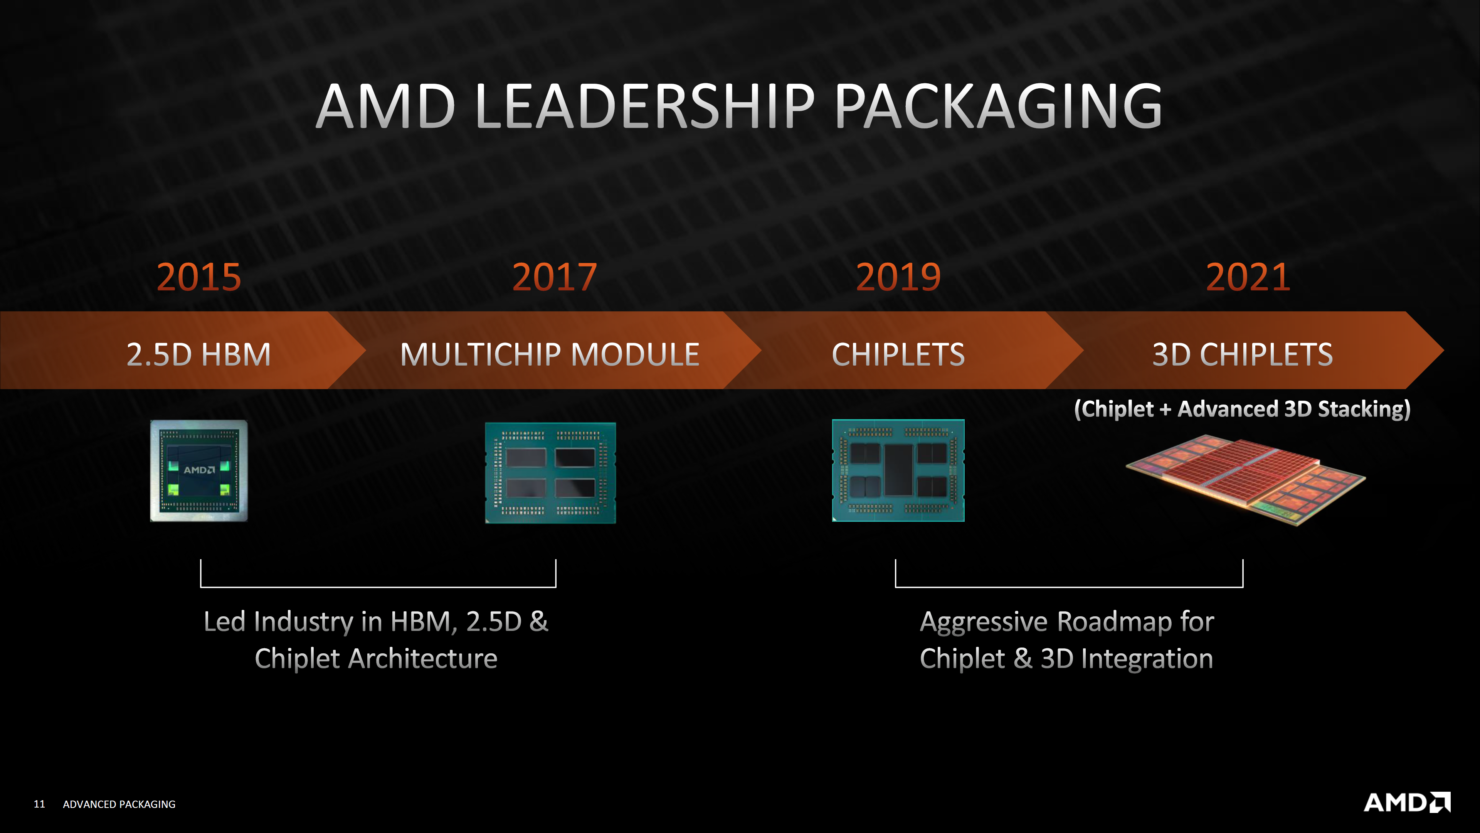 amd-advanced-3d-chiplet-packaging-3d-stacking-technologies-3d-v-cache-_10